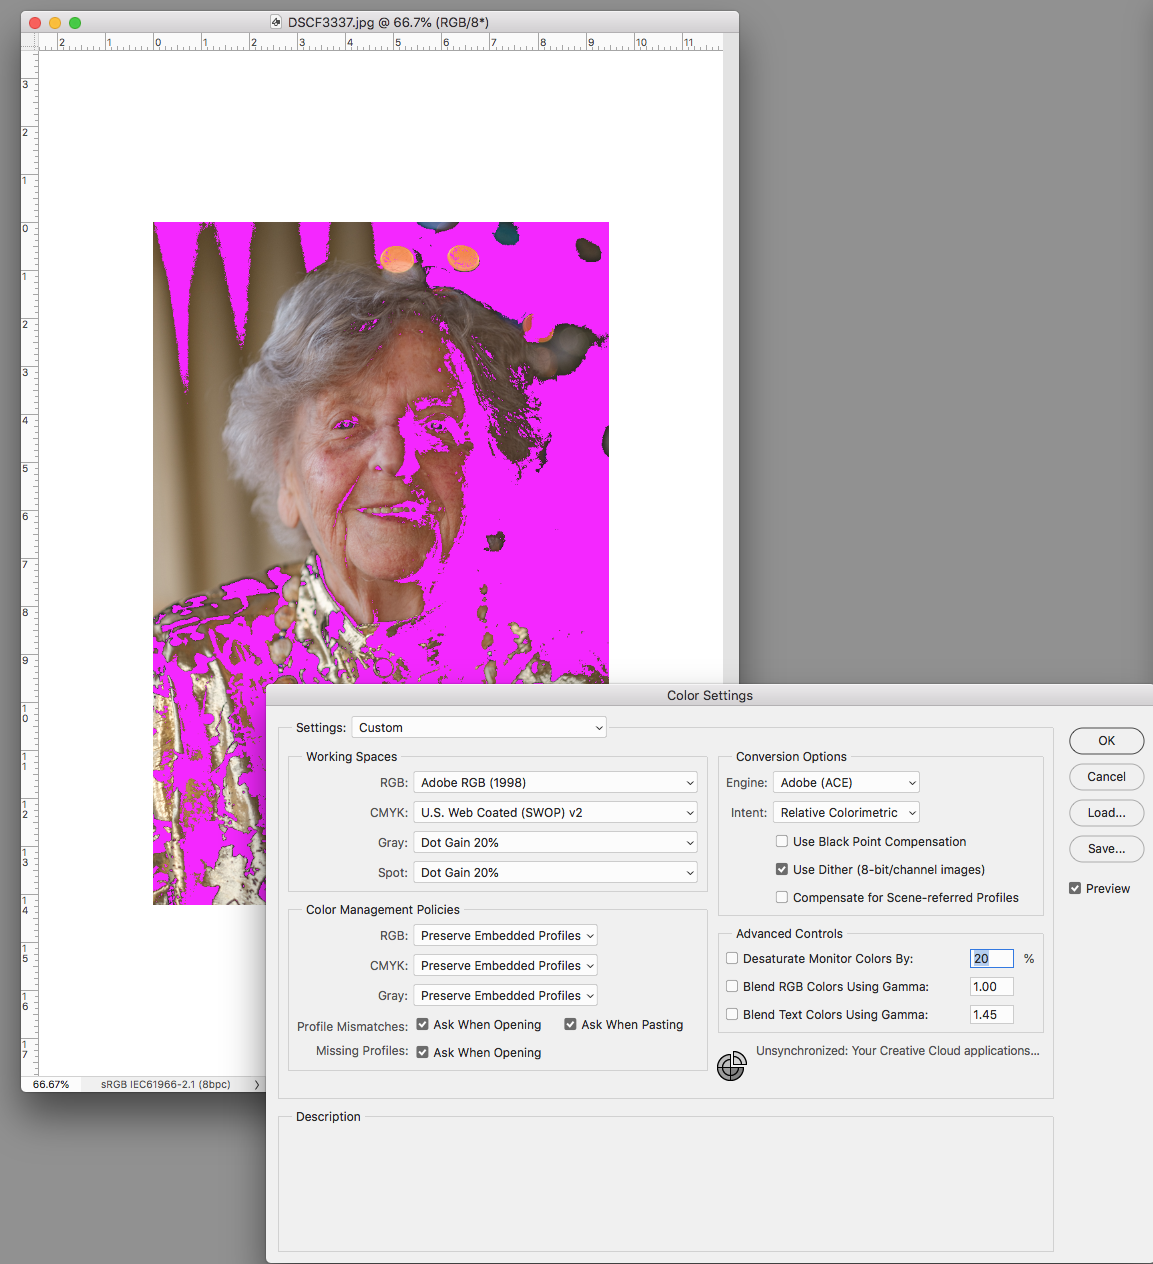 Indesign completely messes up the color of my imag